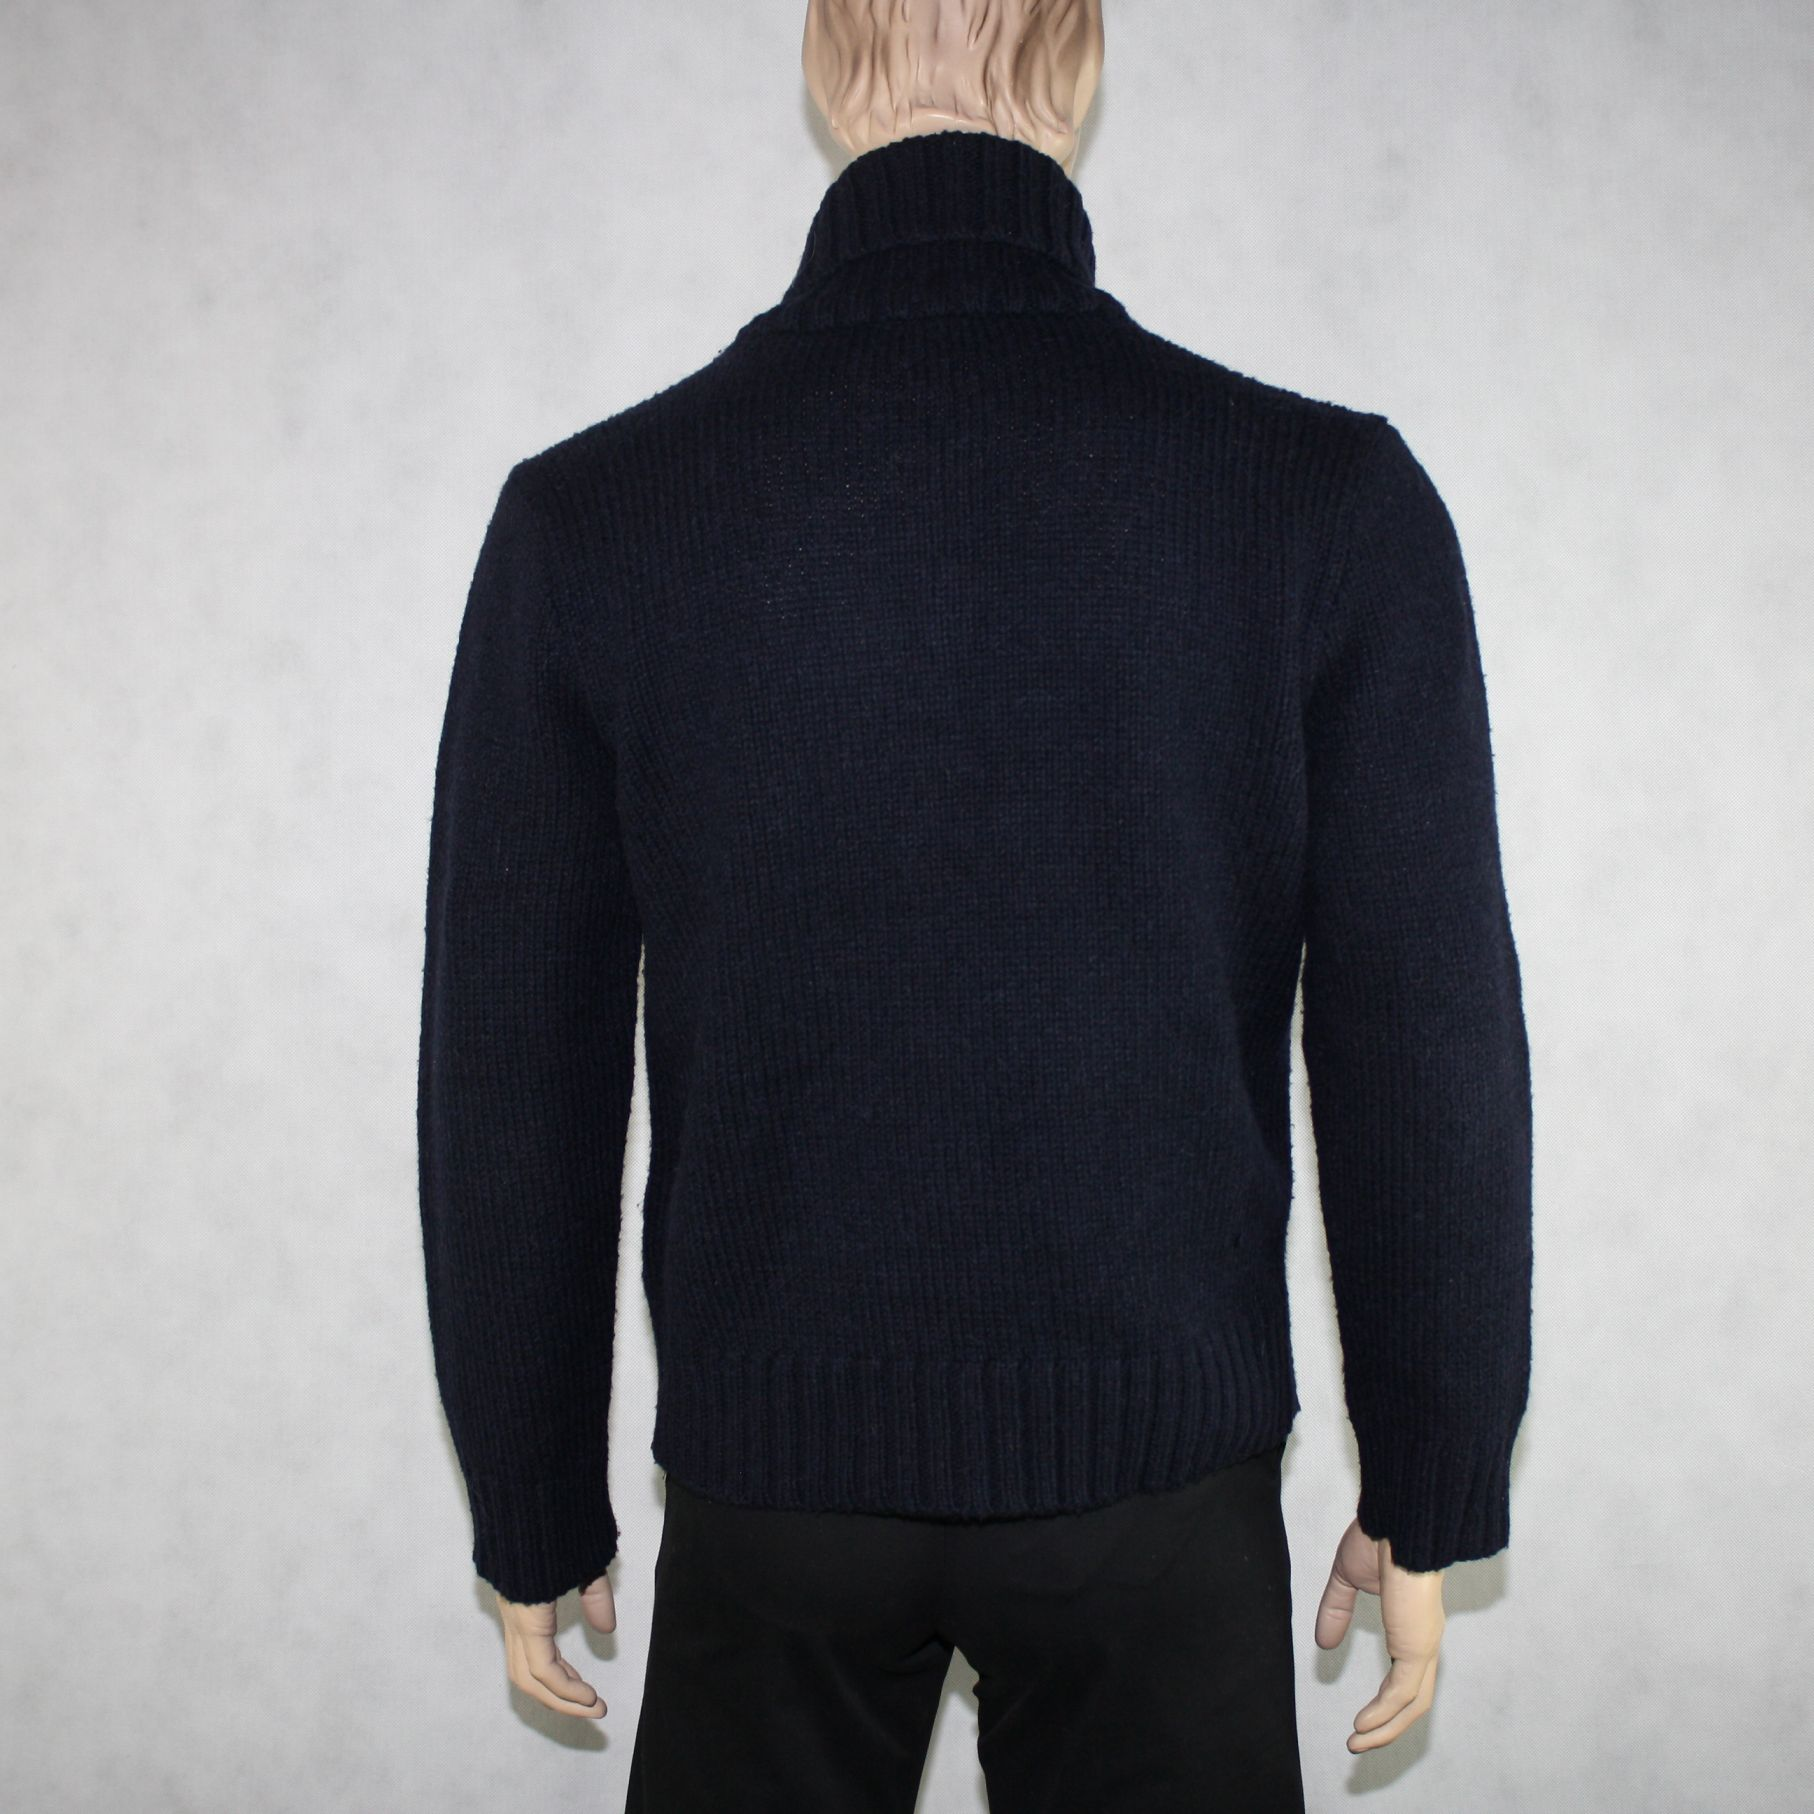 POLO BY RALPH LAUREN mens cowl neck sweater (size L) - vintaya.com